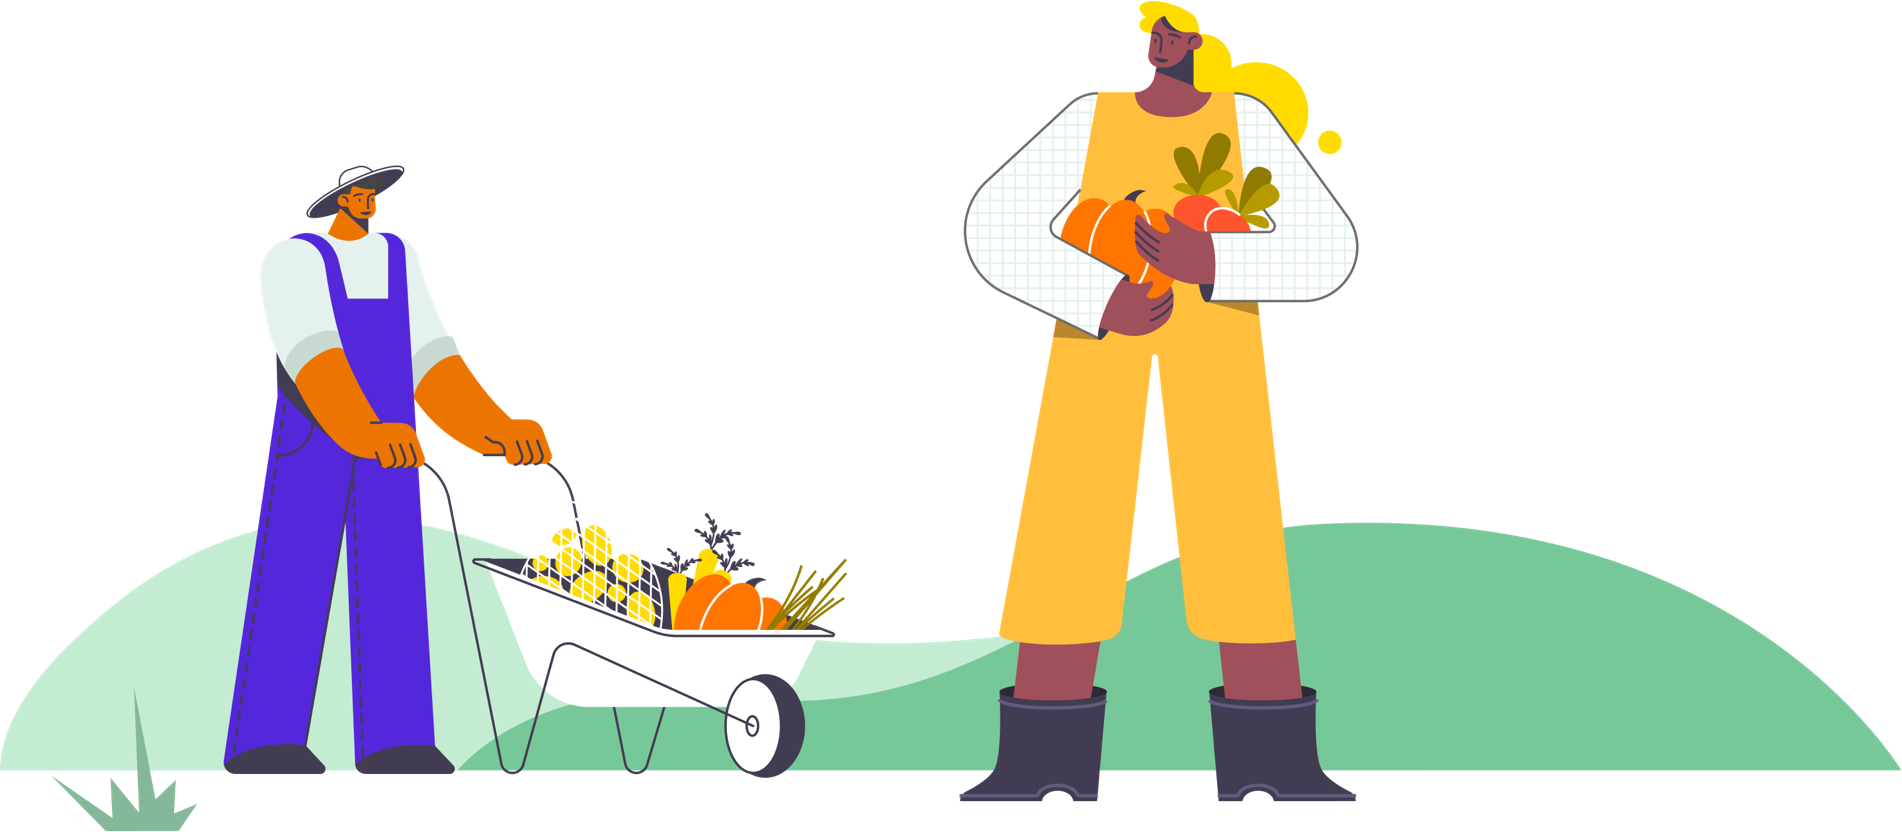 Two workers in a garden. One has a wheelbarrow and the other is standing holding produce.